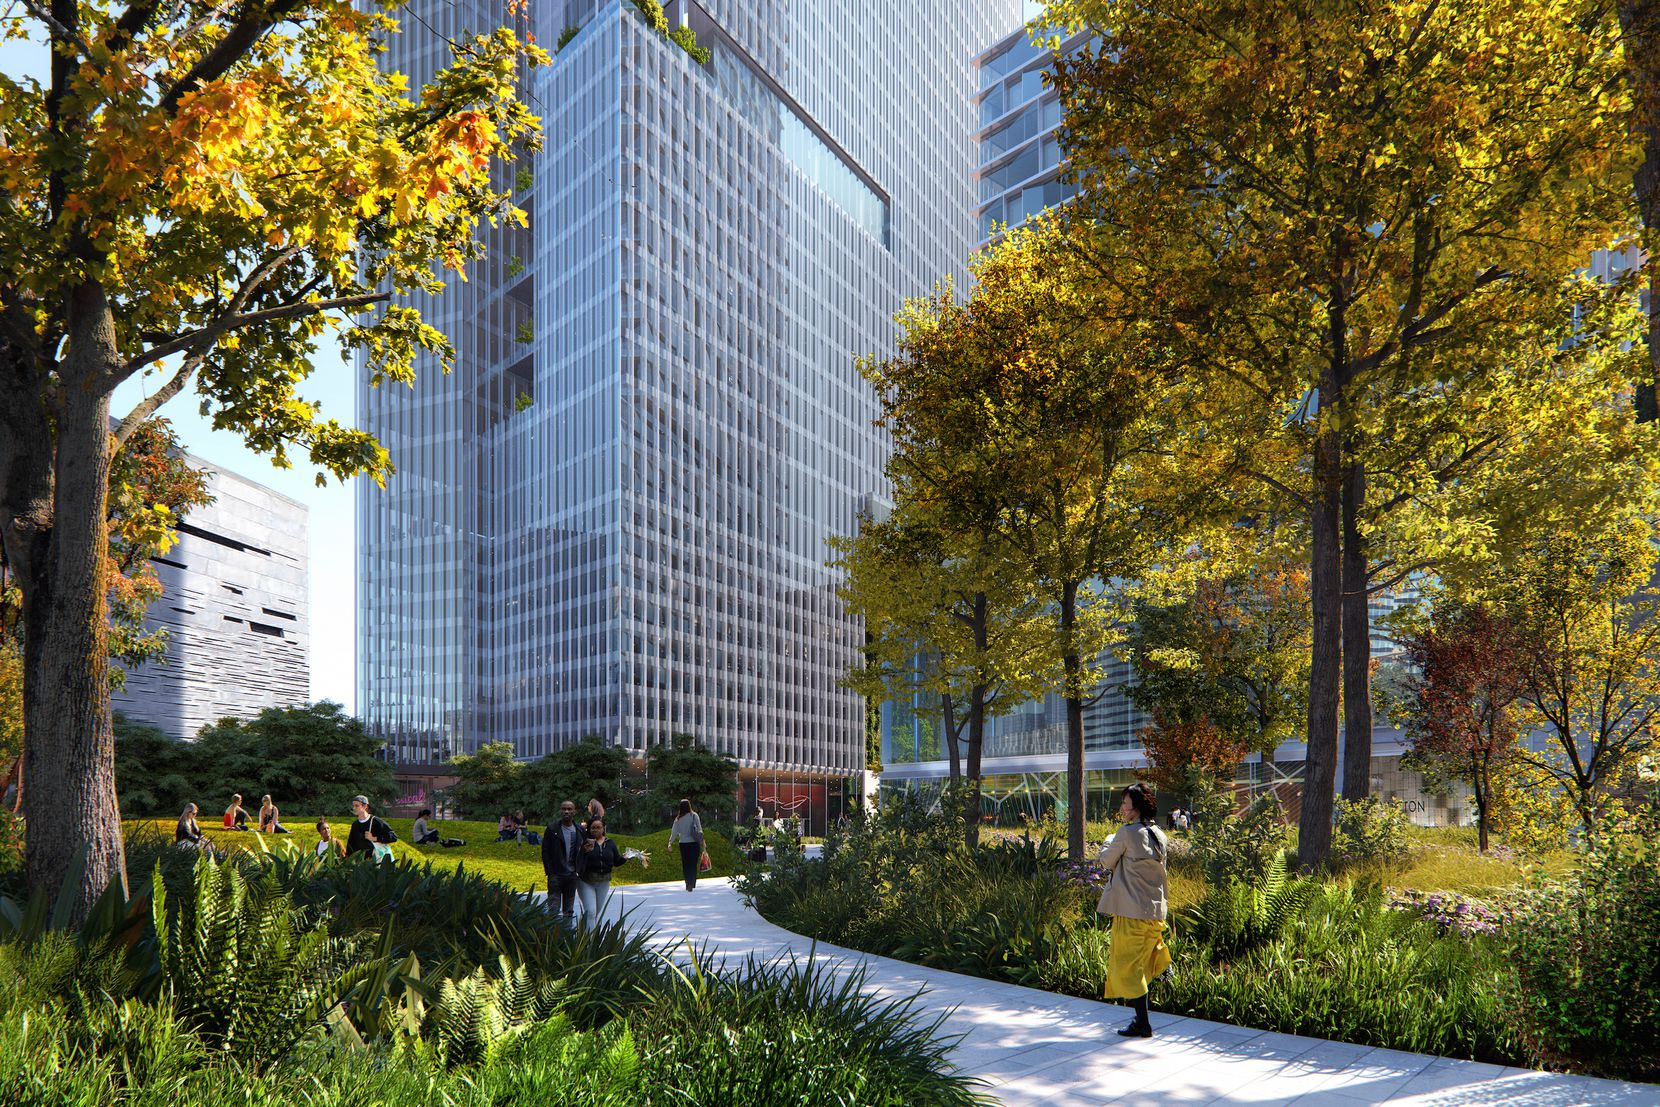 The planned park will include trees, water and public space.